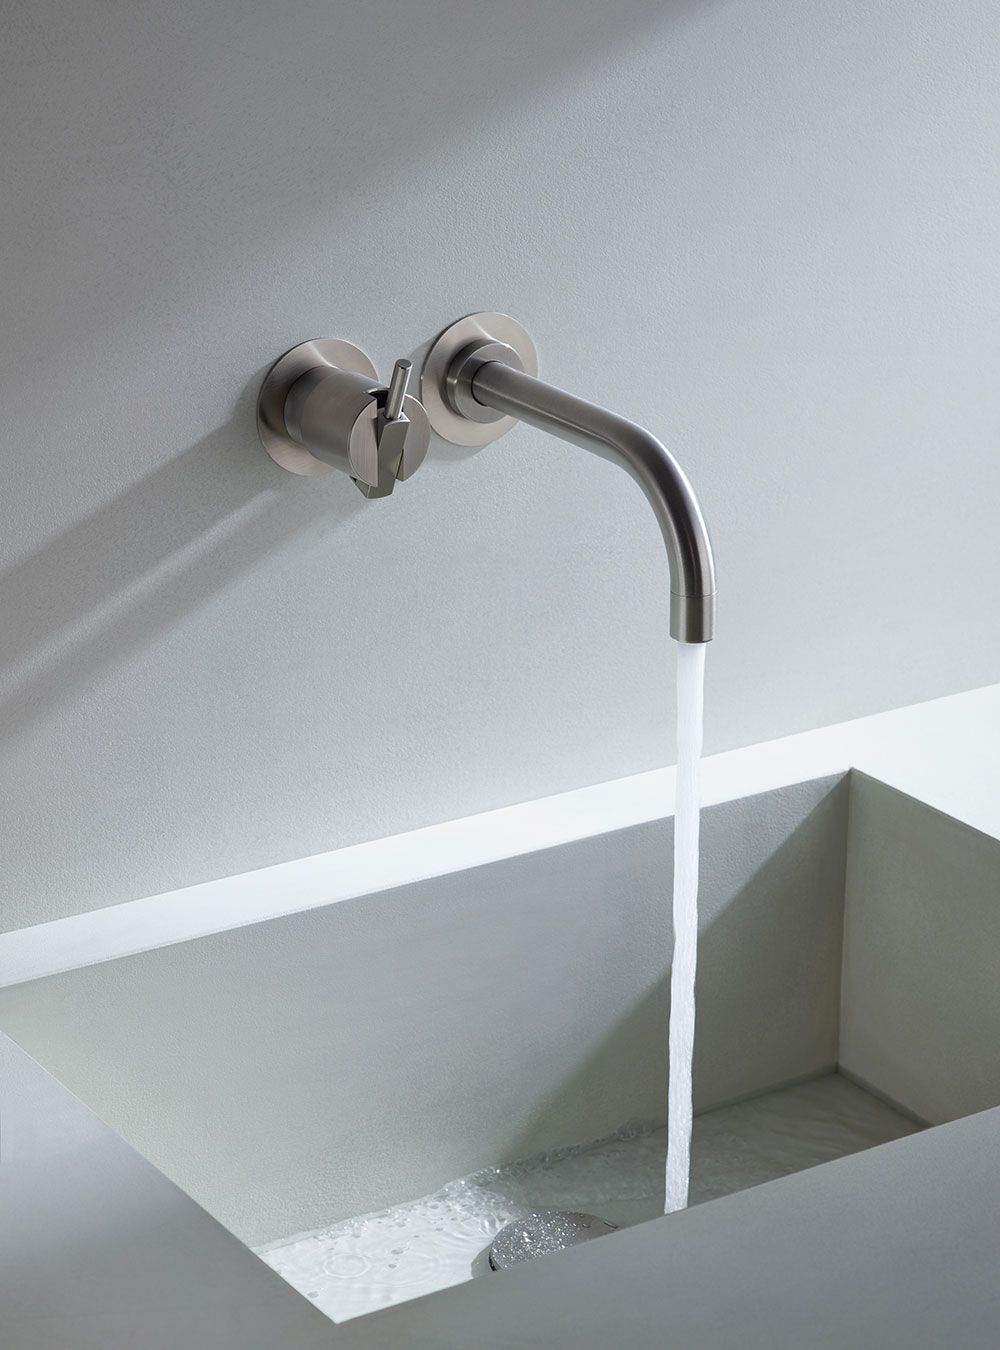 Taps and accessories in timeless Scandinavian design | Details ...